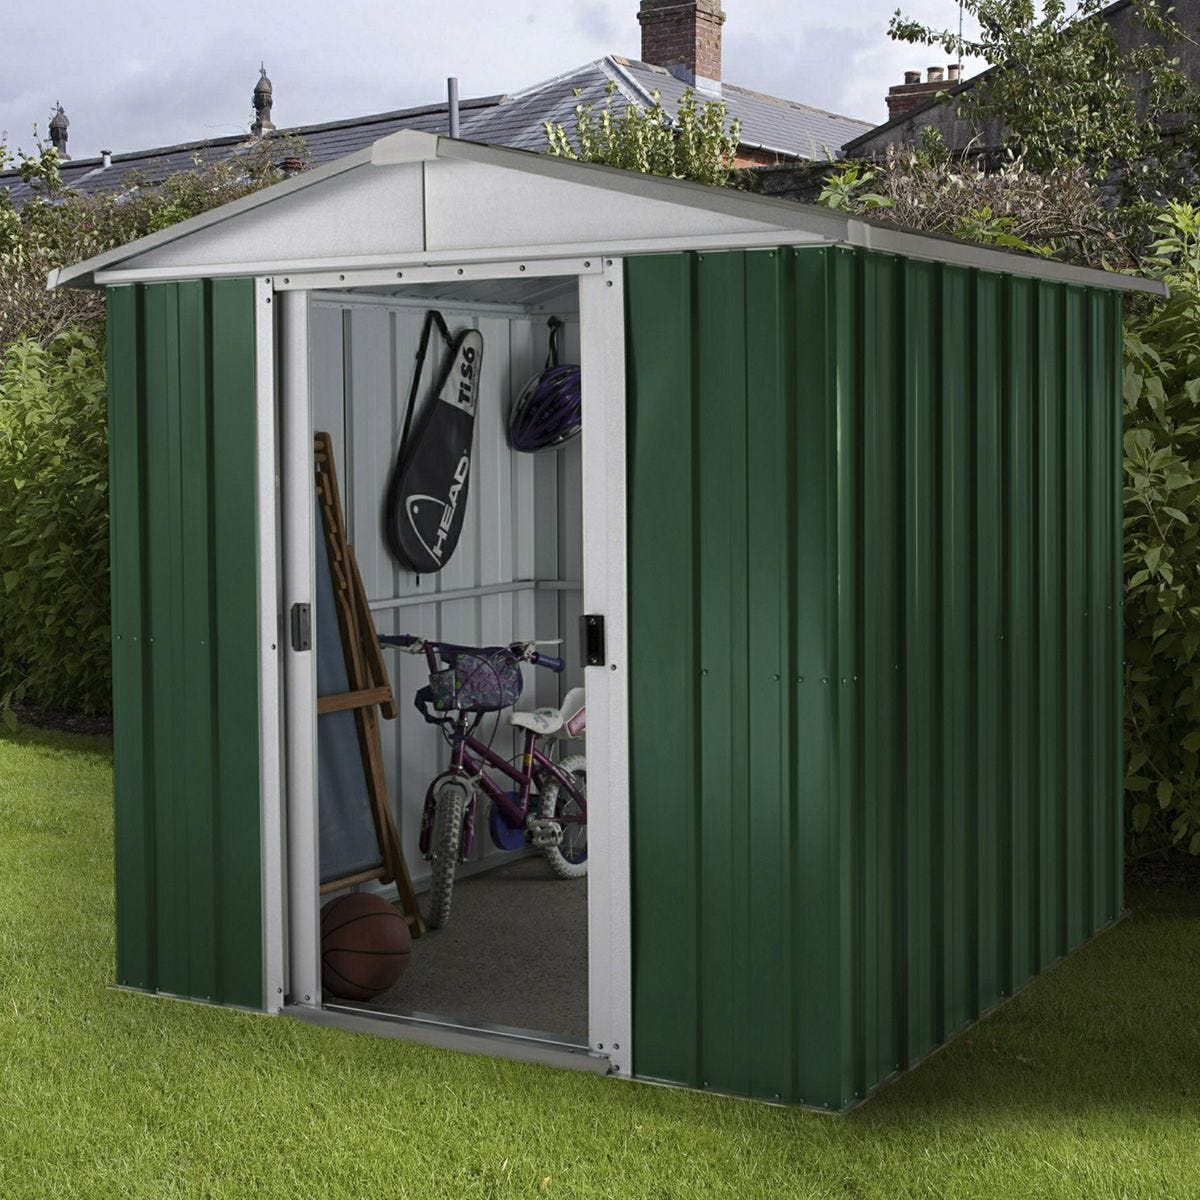 Yardmaster Emerald Deluxe Metal Apex Shed with Floor Support Frame